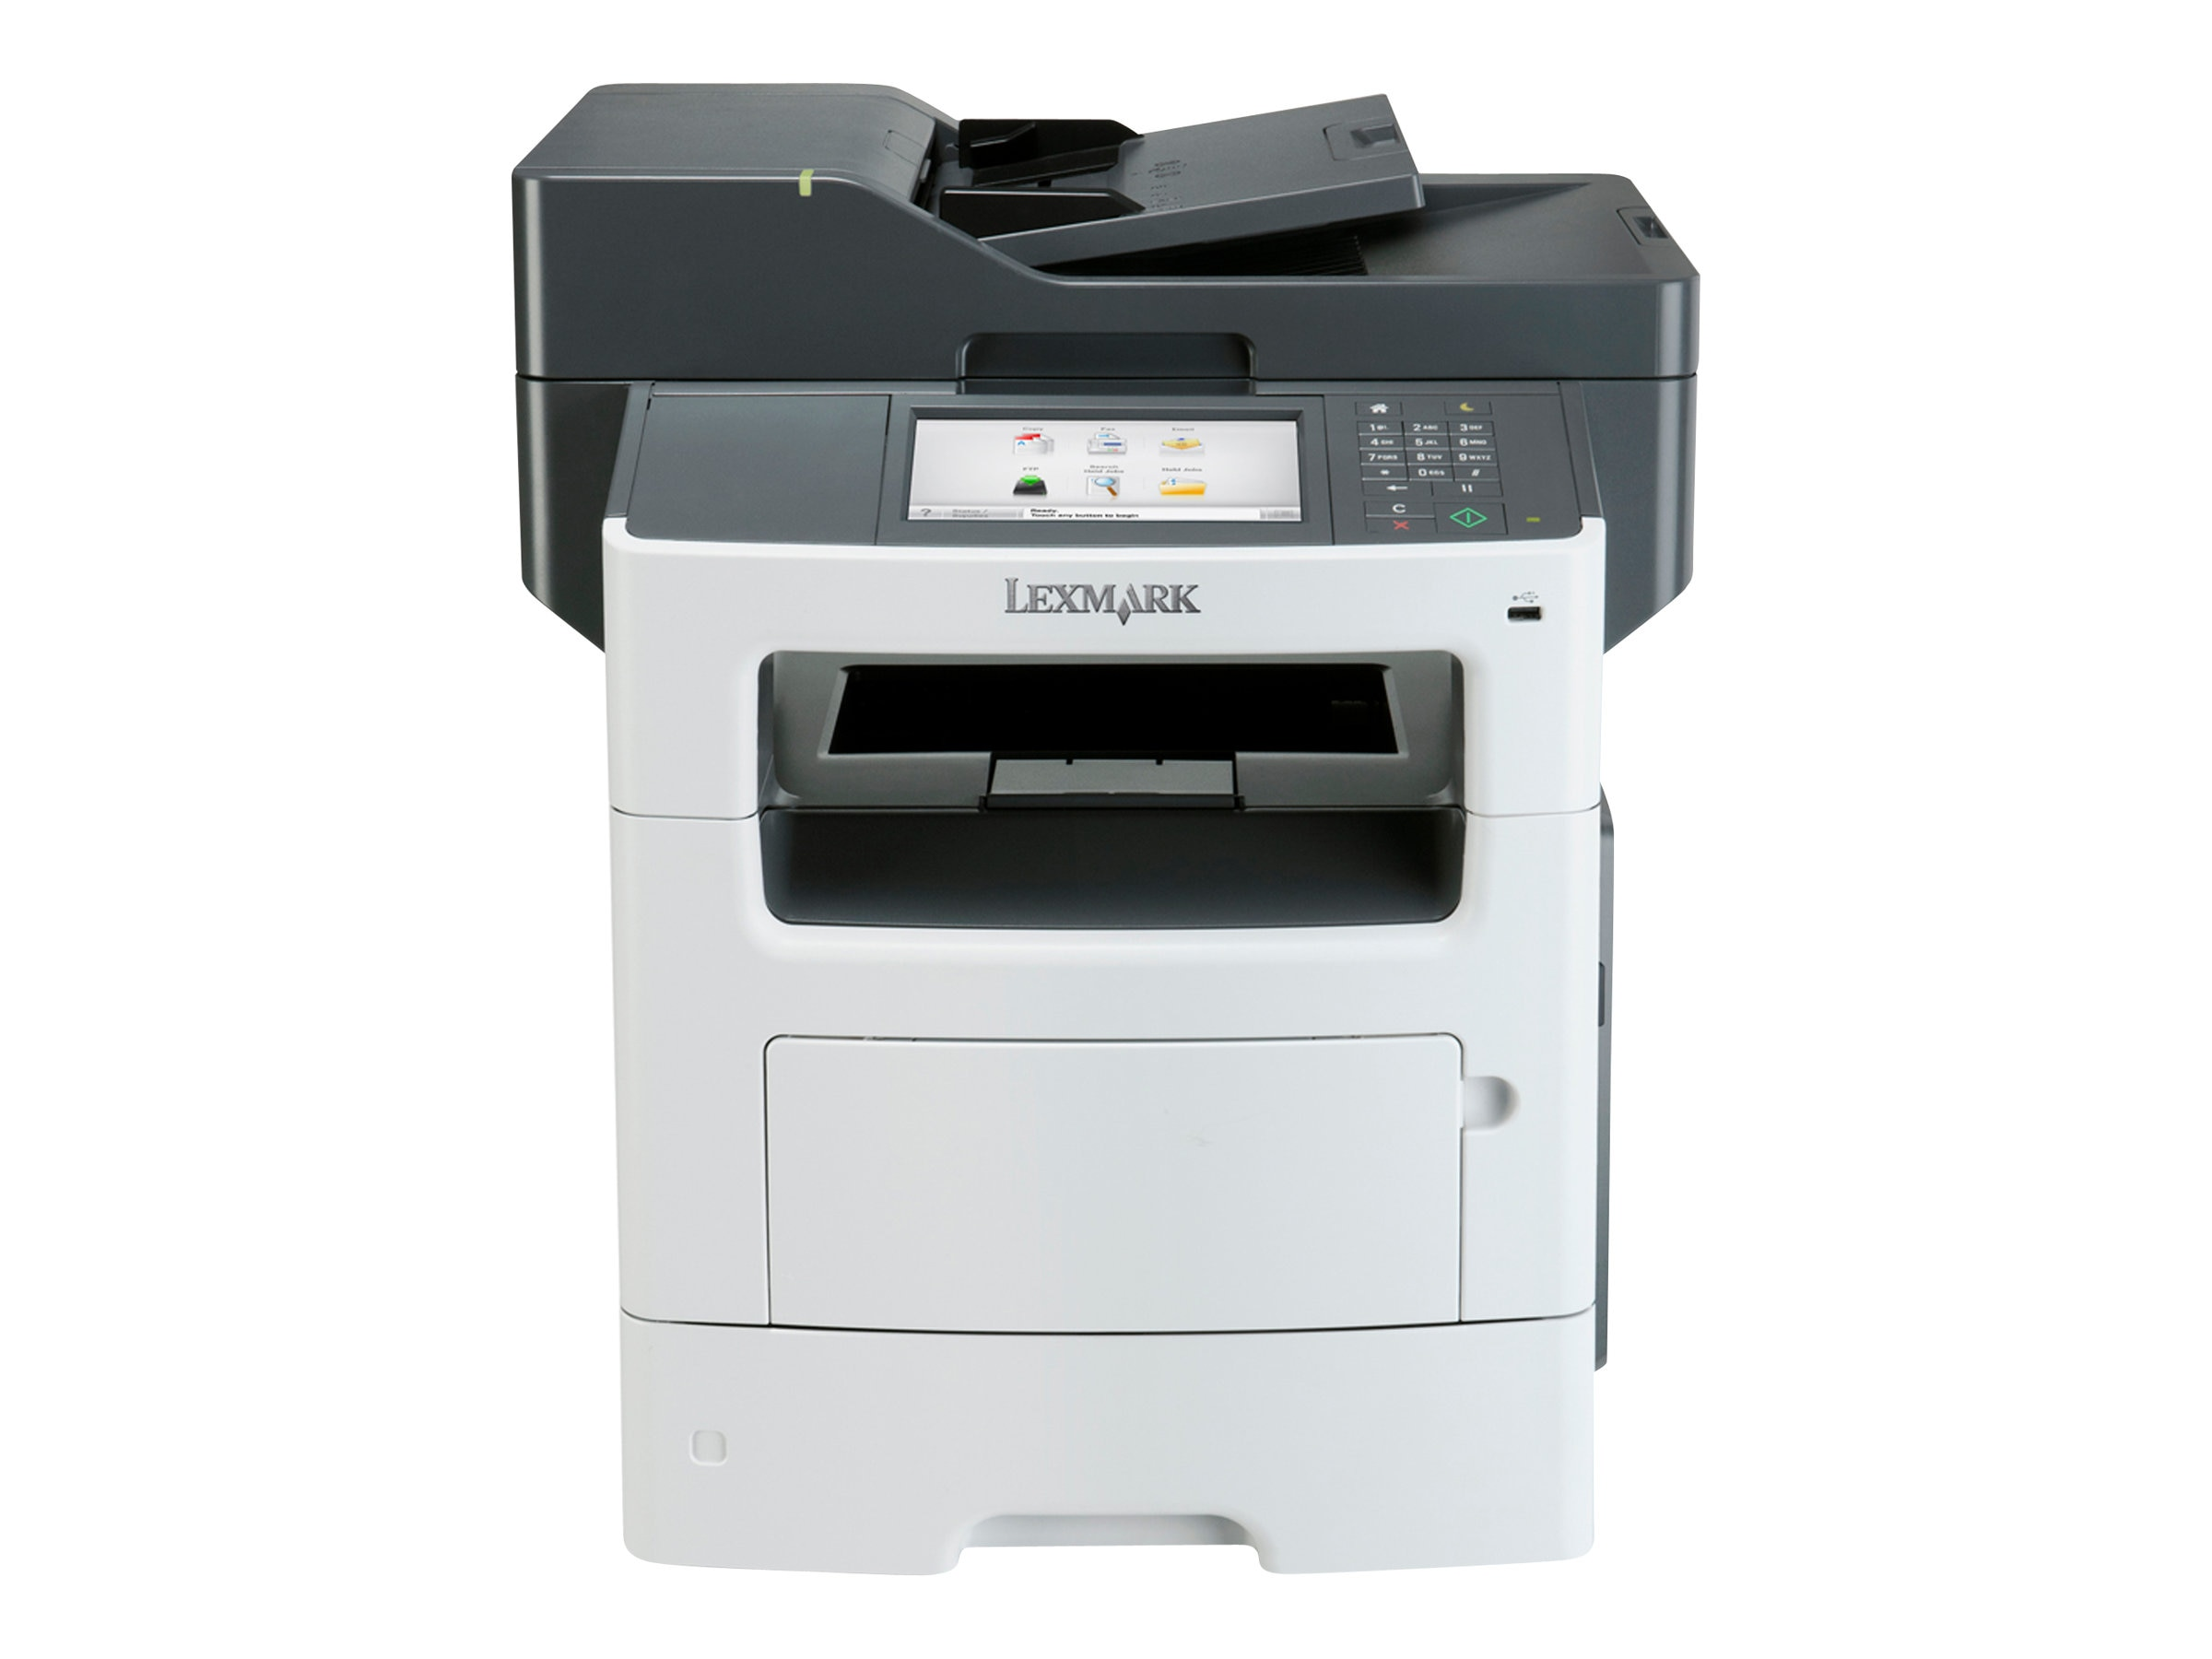 Lexmark MX611de Monochrome Laser Multifunction Printer, 35S6701